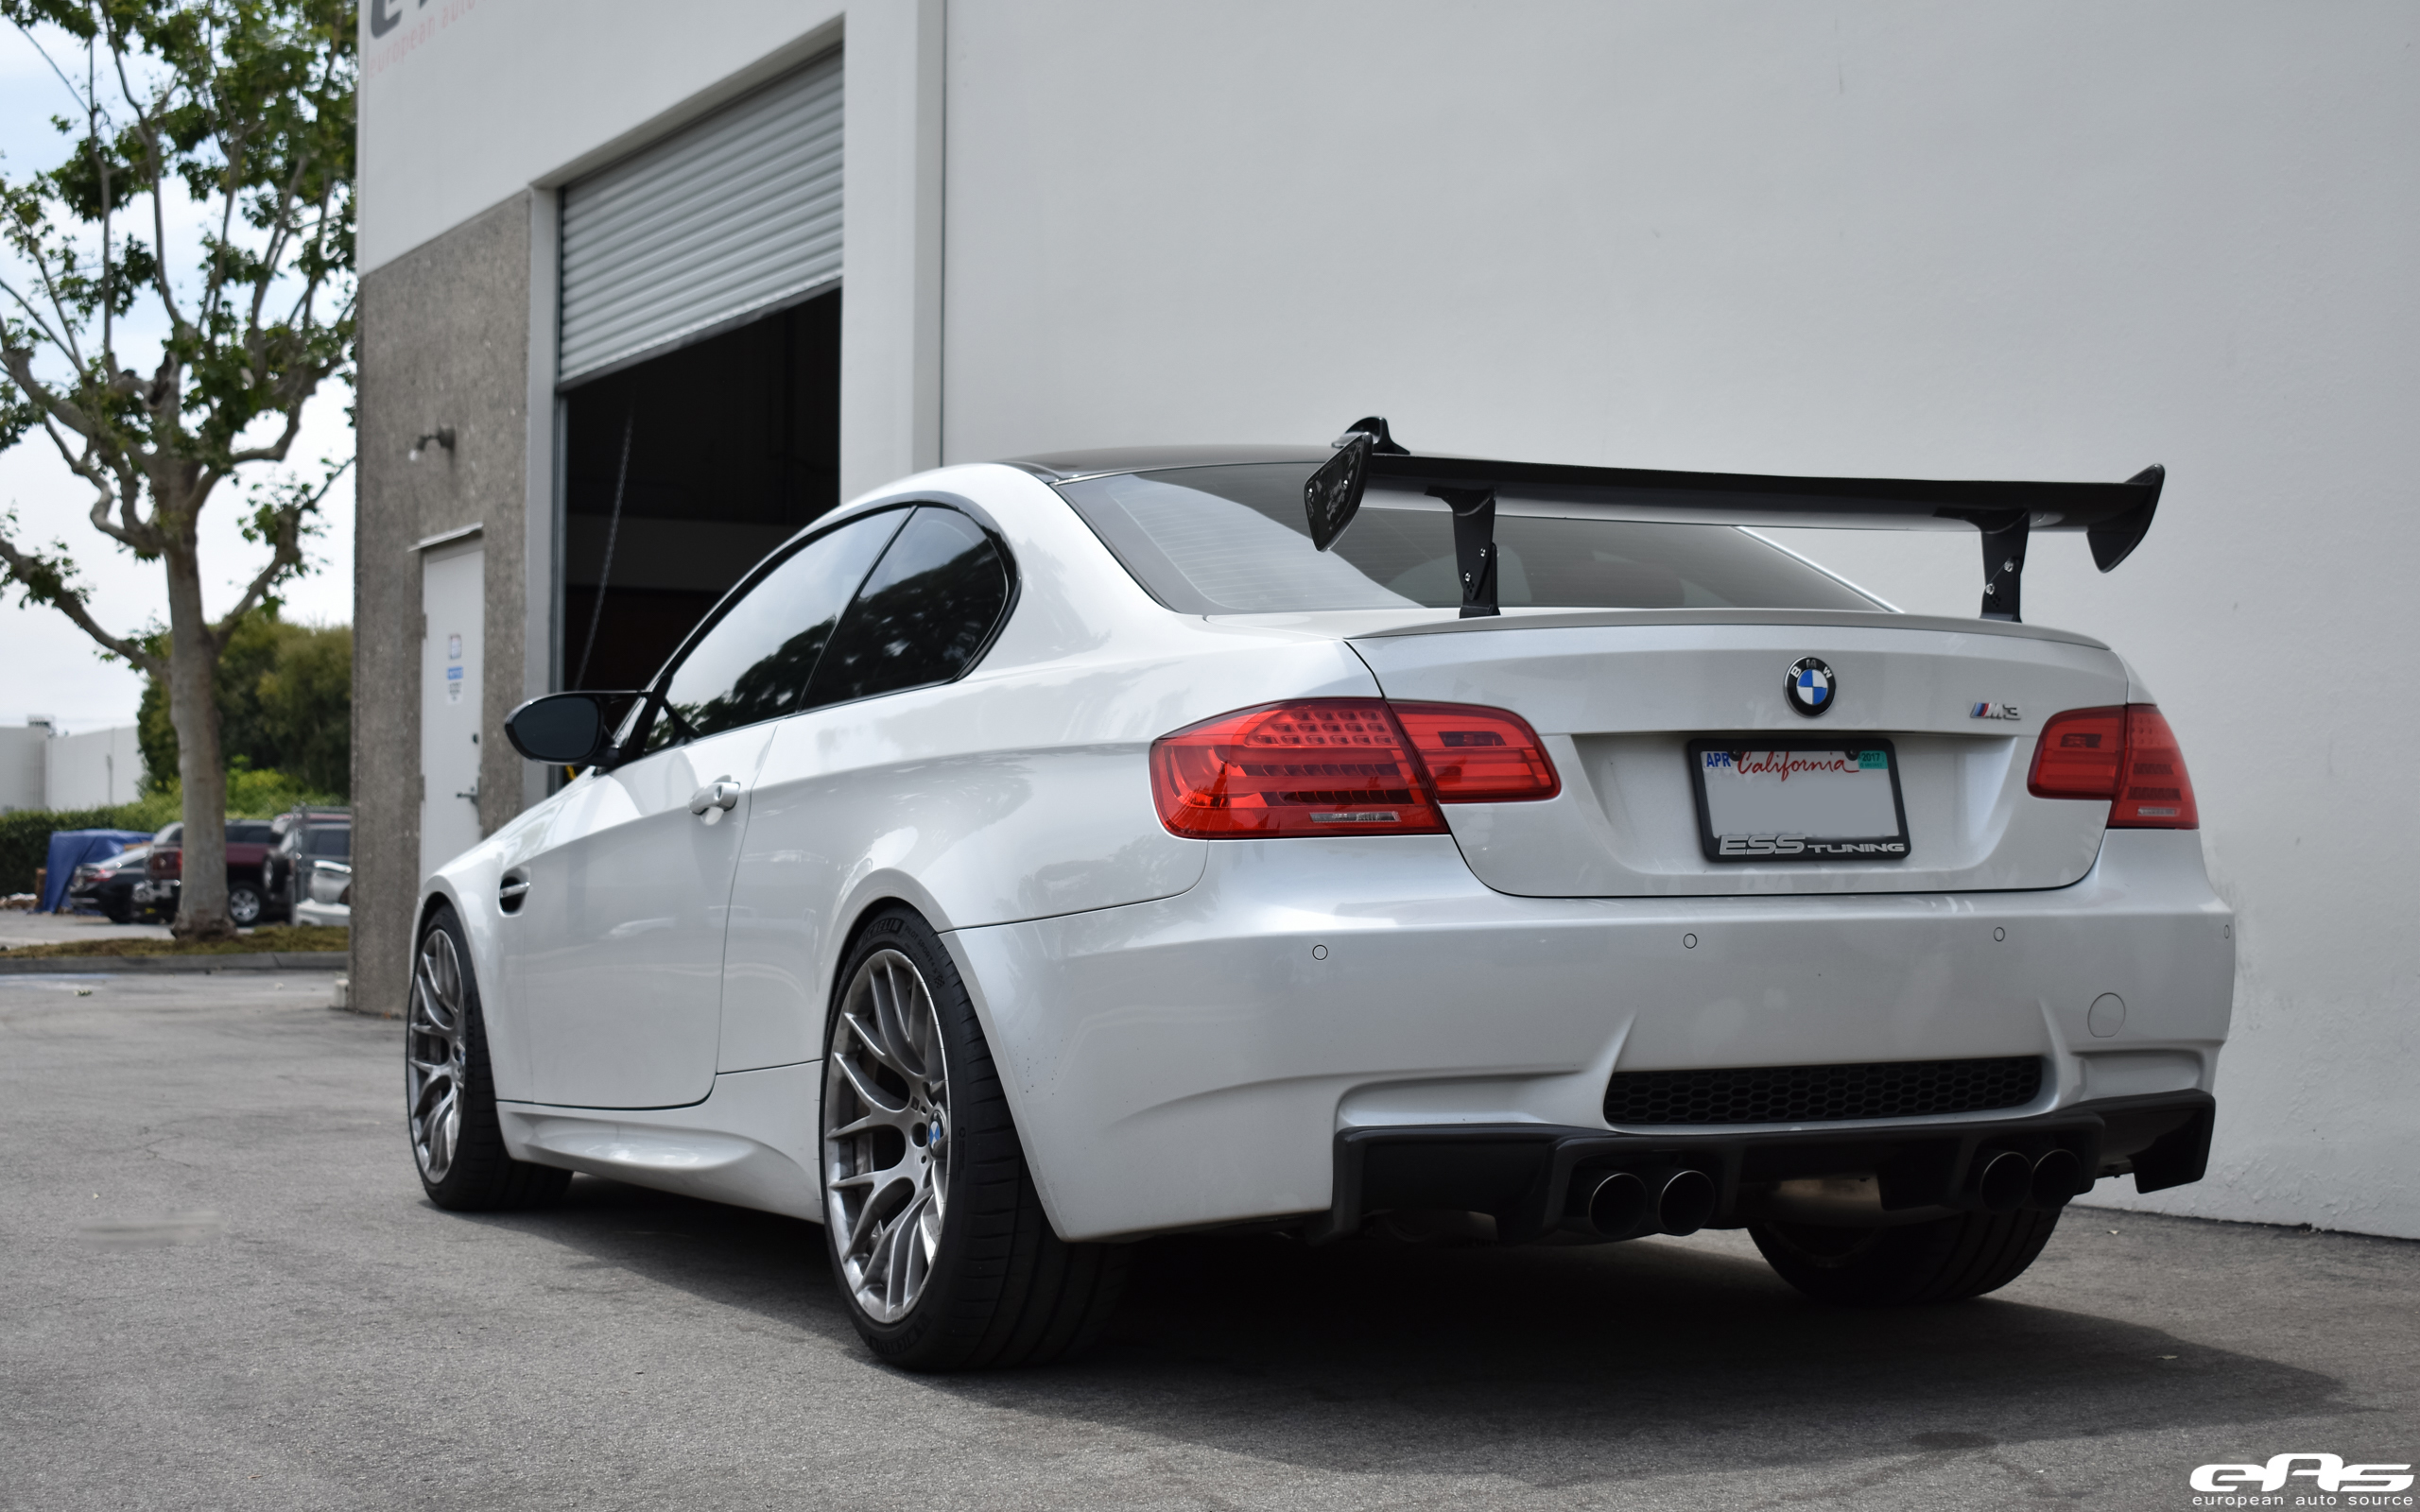 Mineral White Bmw M3 Gets Lowered And Tastefully Modded